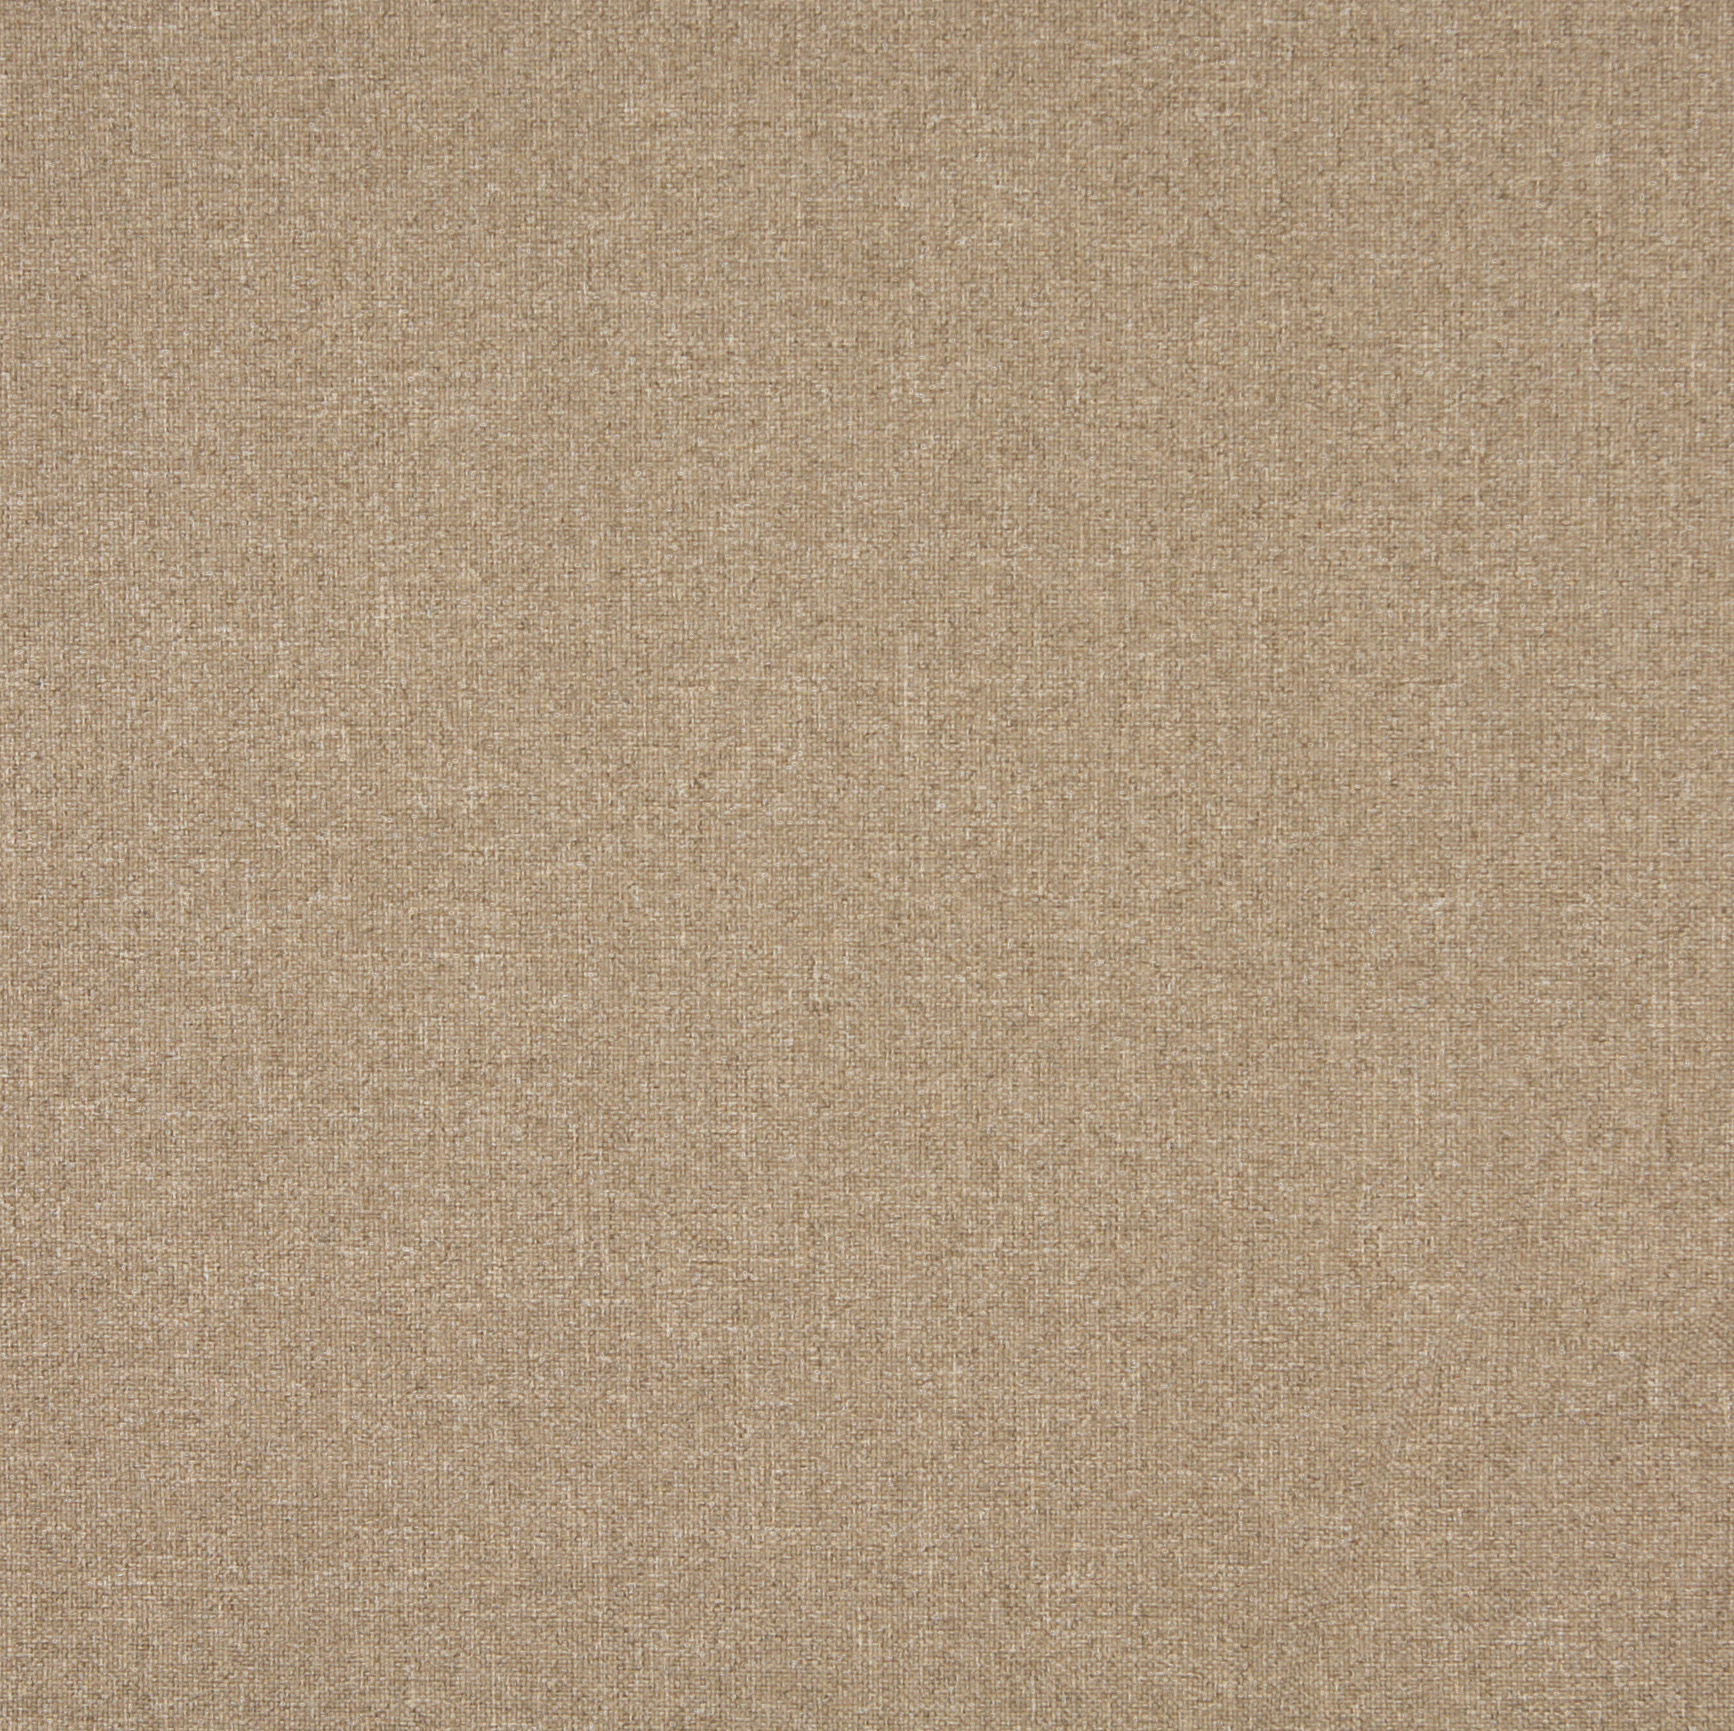 Beige sand plain tweed stain and soil repellent upholstery for Upholstery fabric